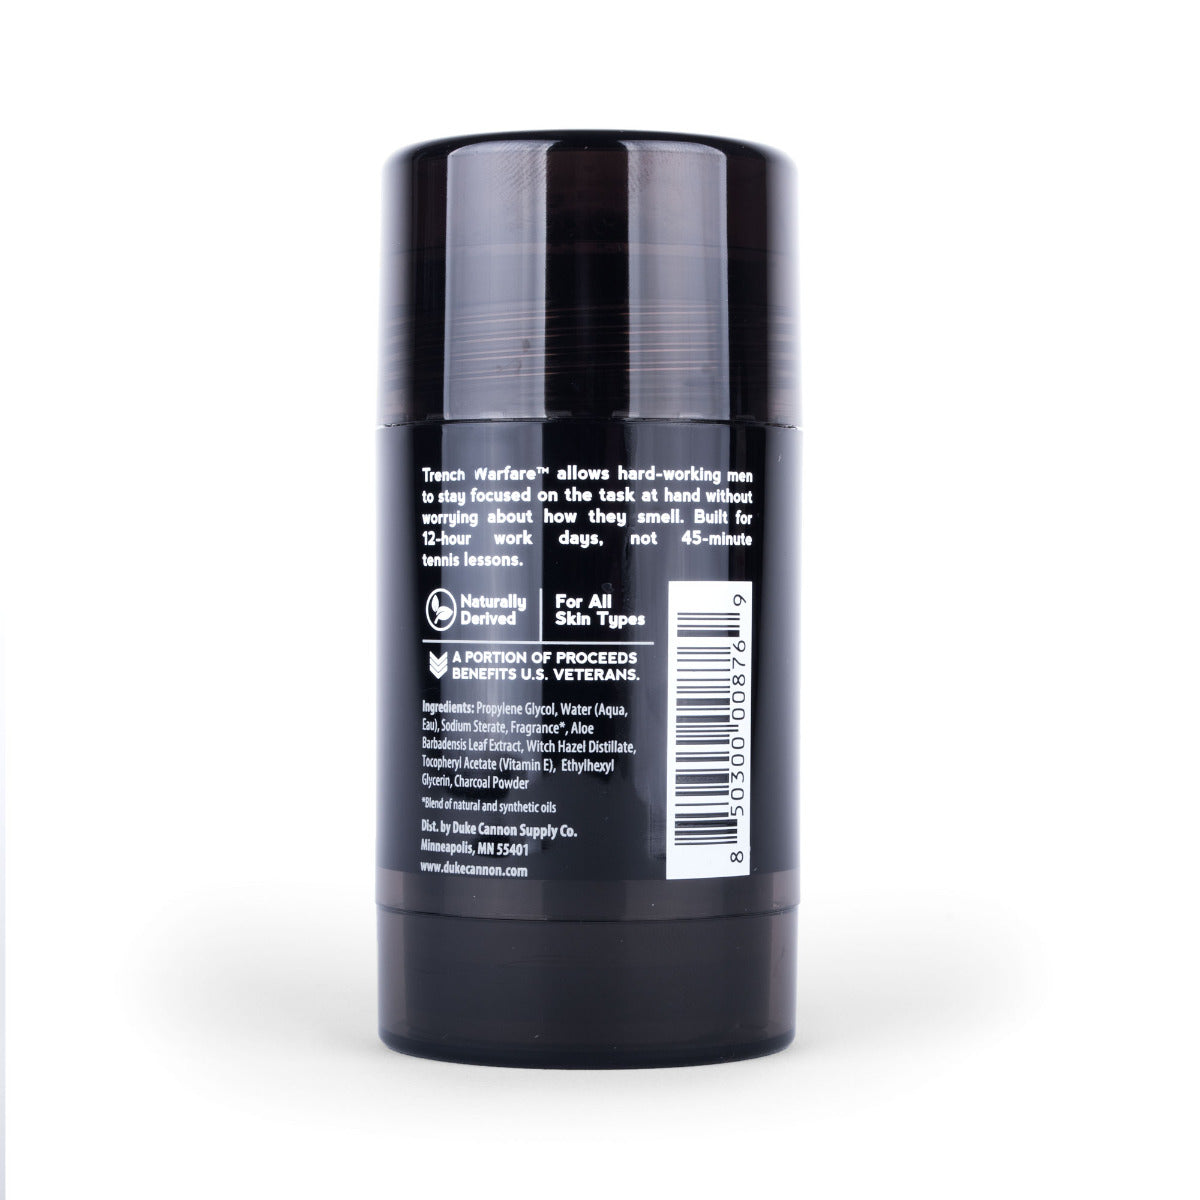 Trench Warfare Natural Charcoal Deodorant - Bergamot & Black Pepper